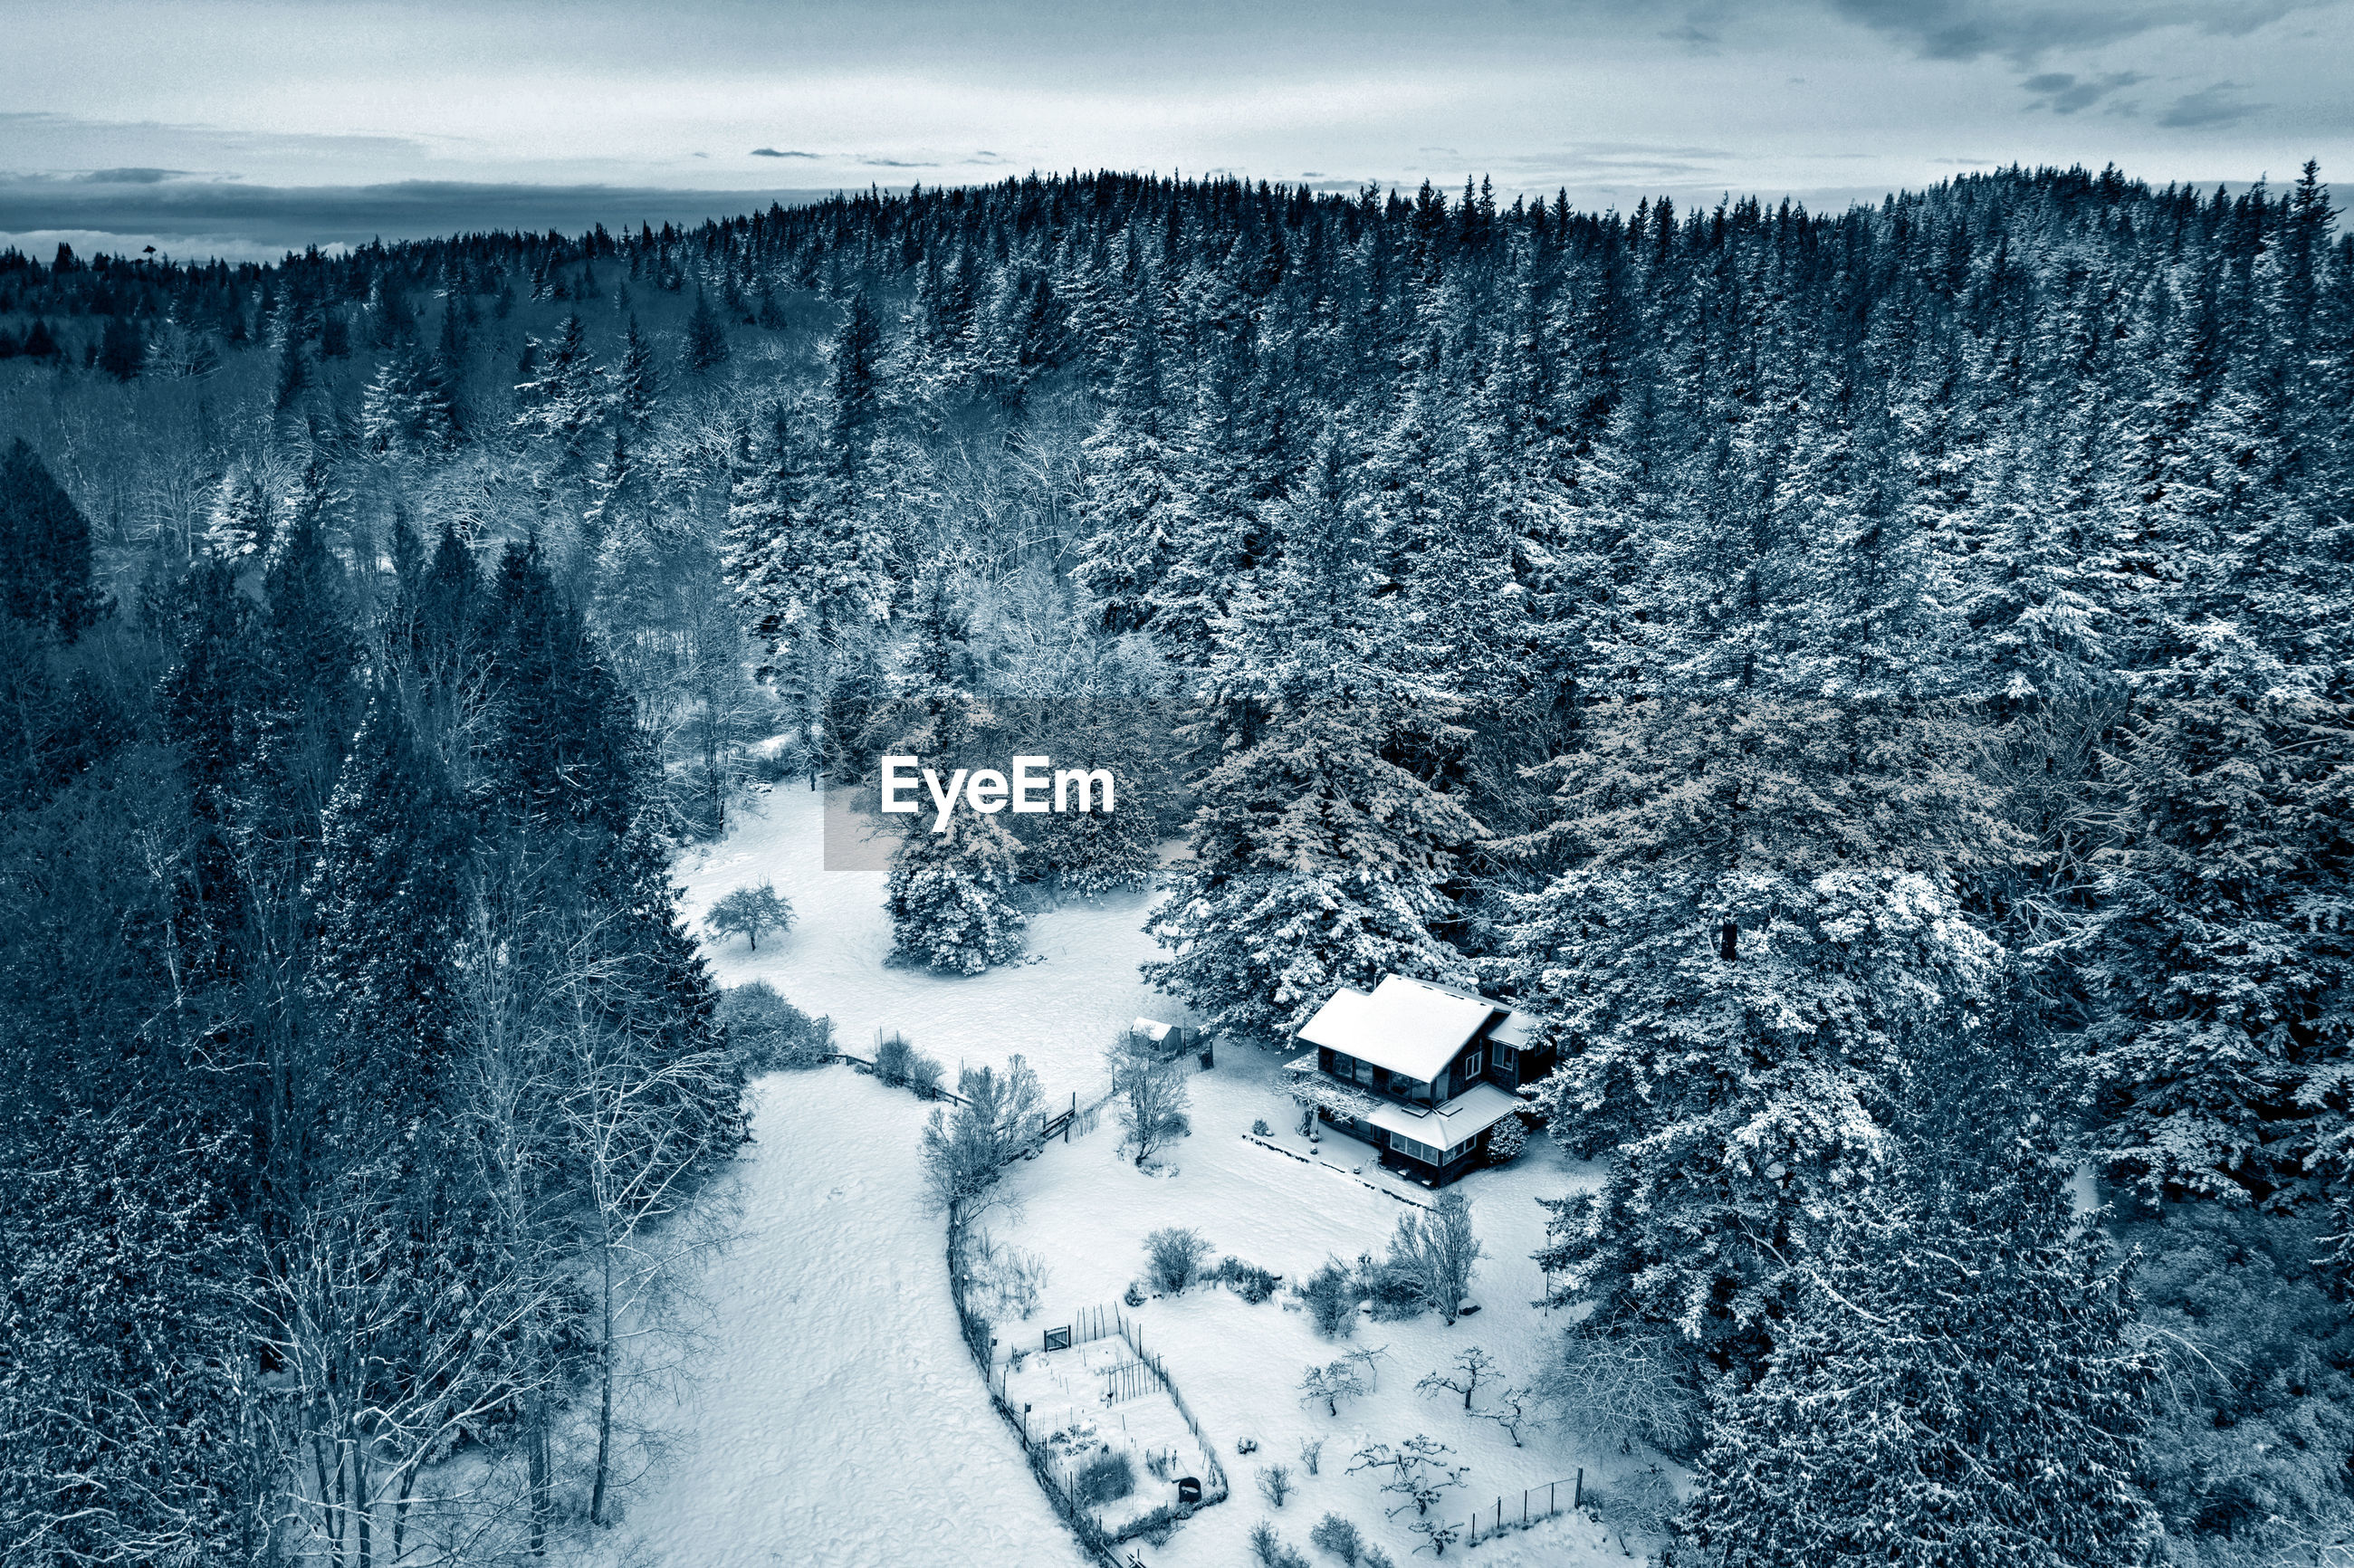 HIGH ANGLE VIEW OF SNOW COVERED LAND AND TREES